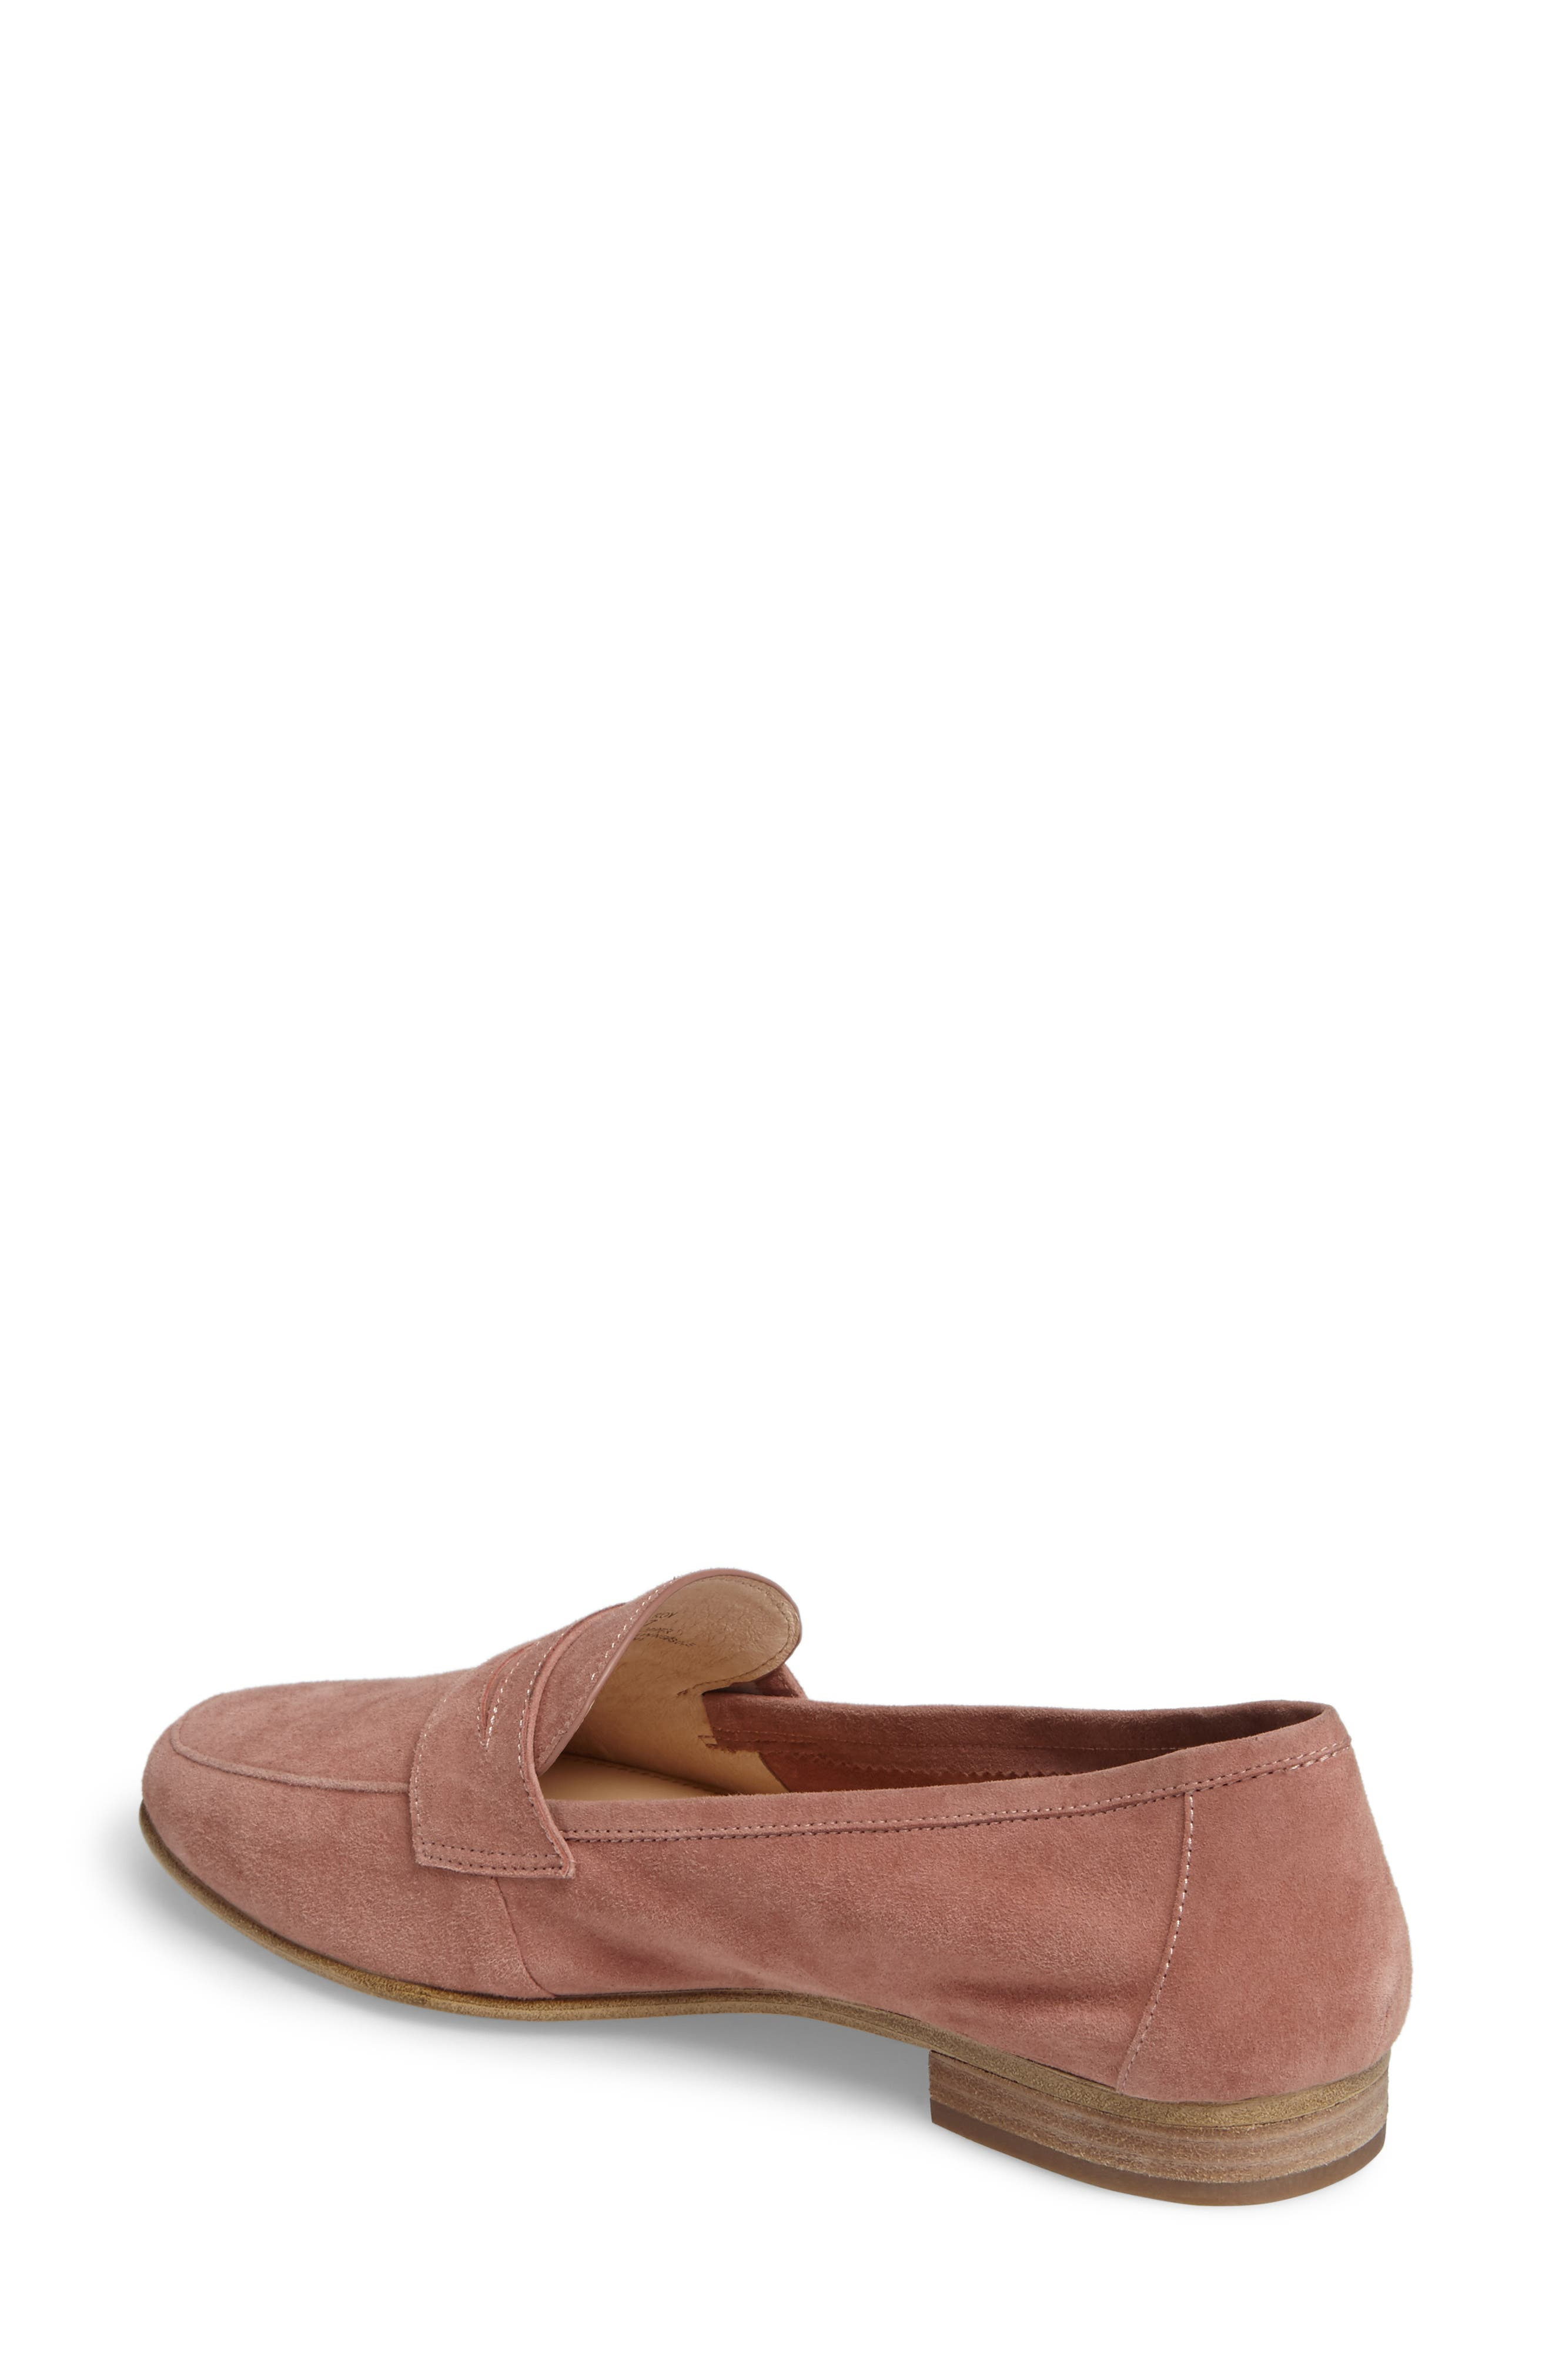 Elroy Penny Loafer,                             Alternate thumbnail 8, color,